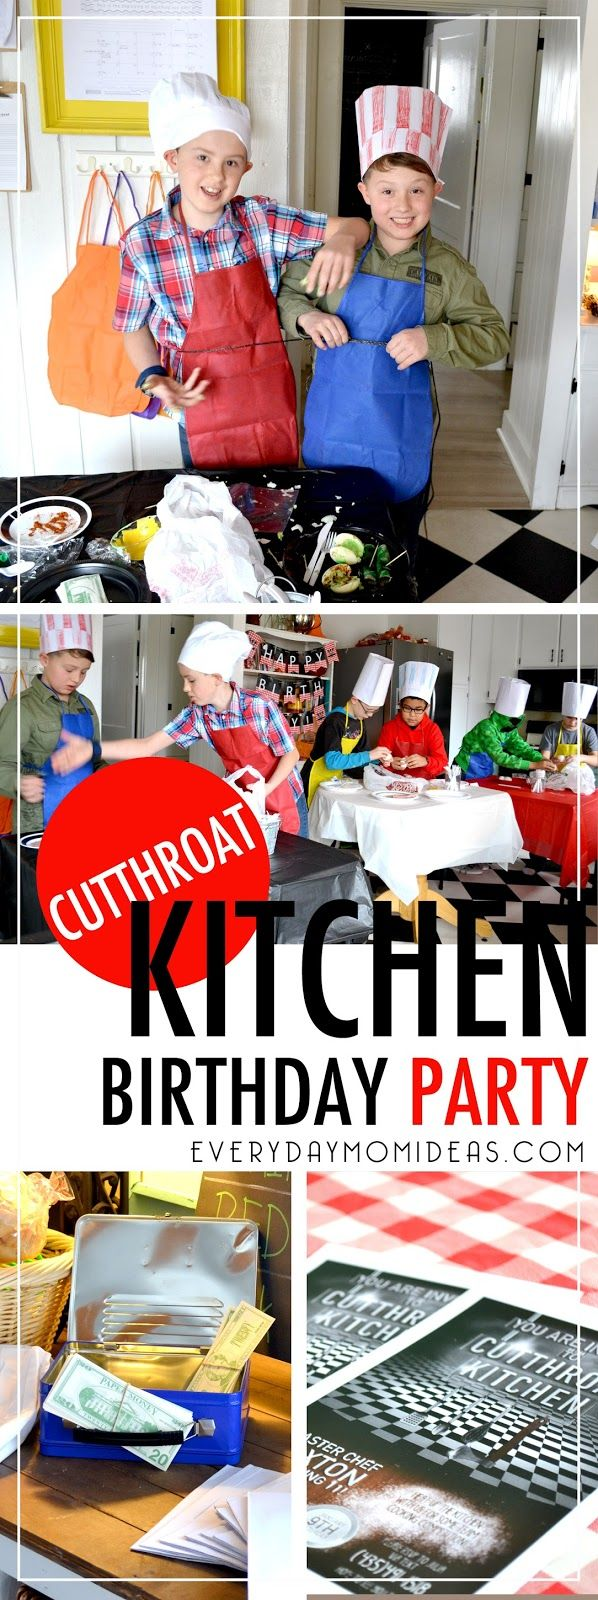 My kids and I have been binge watching Cutthroat Kitchen on Netflix so my eleven year old son begged me for a cooking party for his up co...